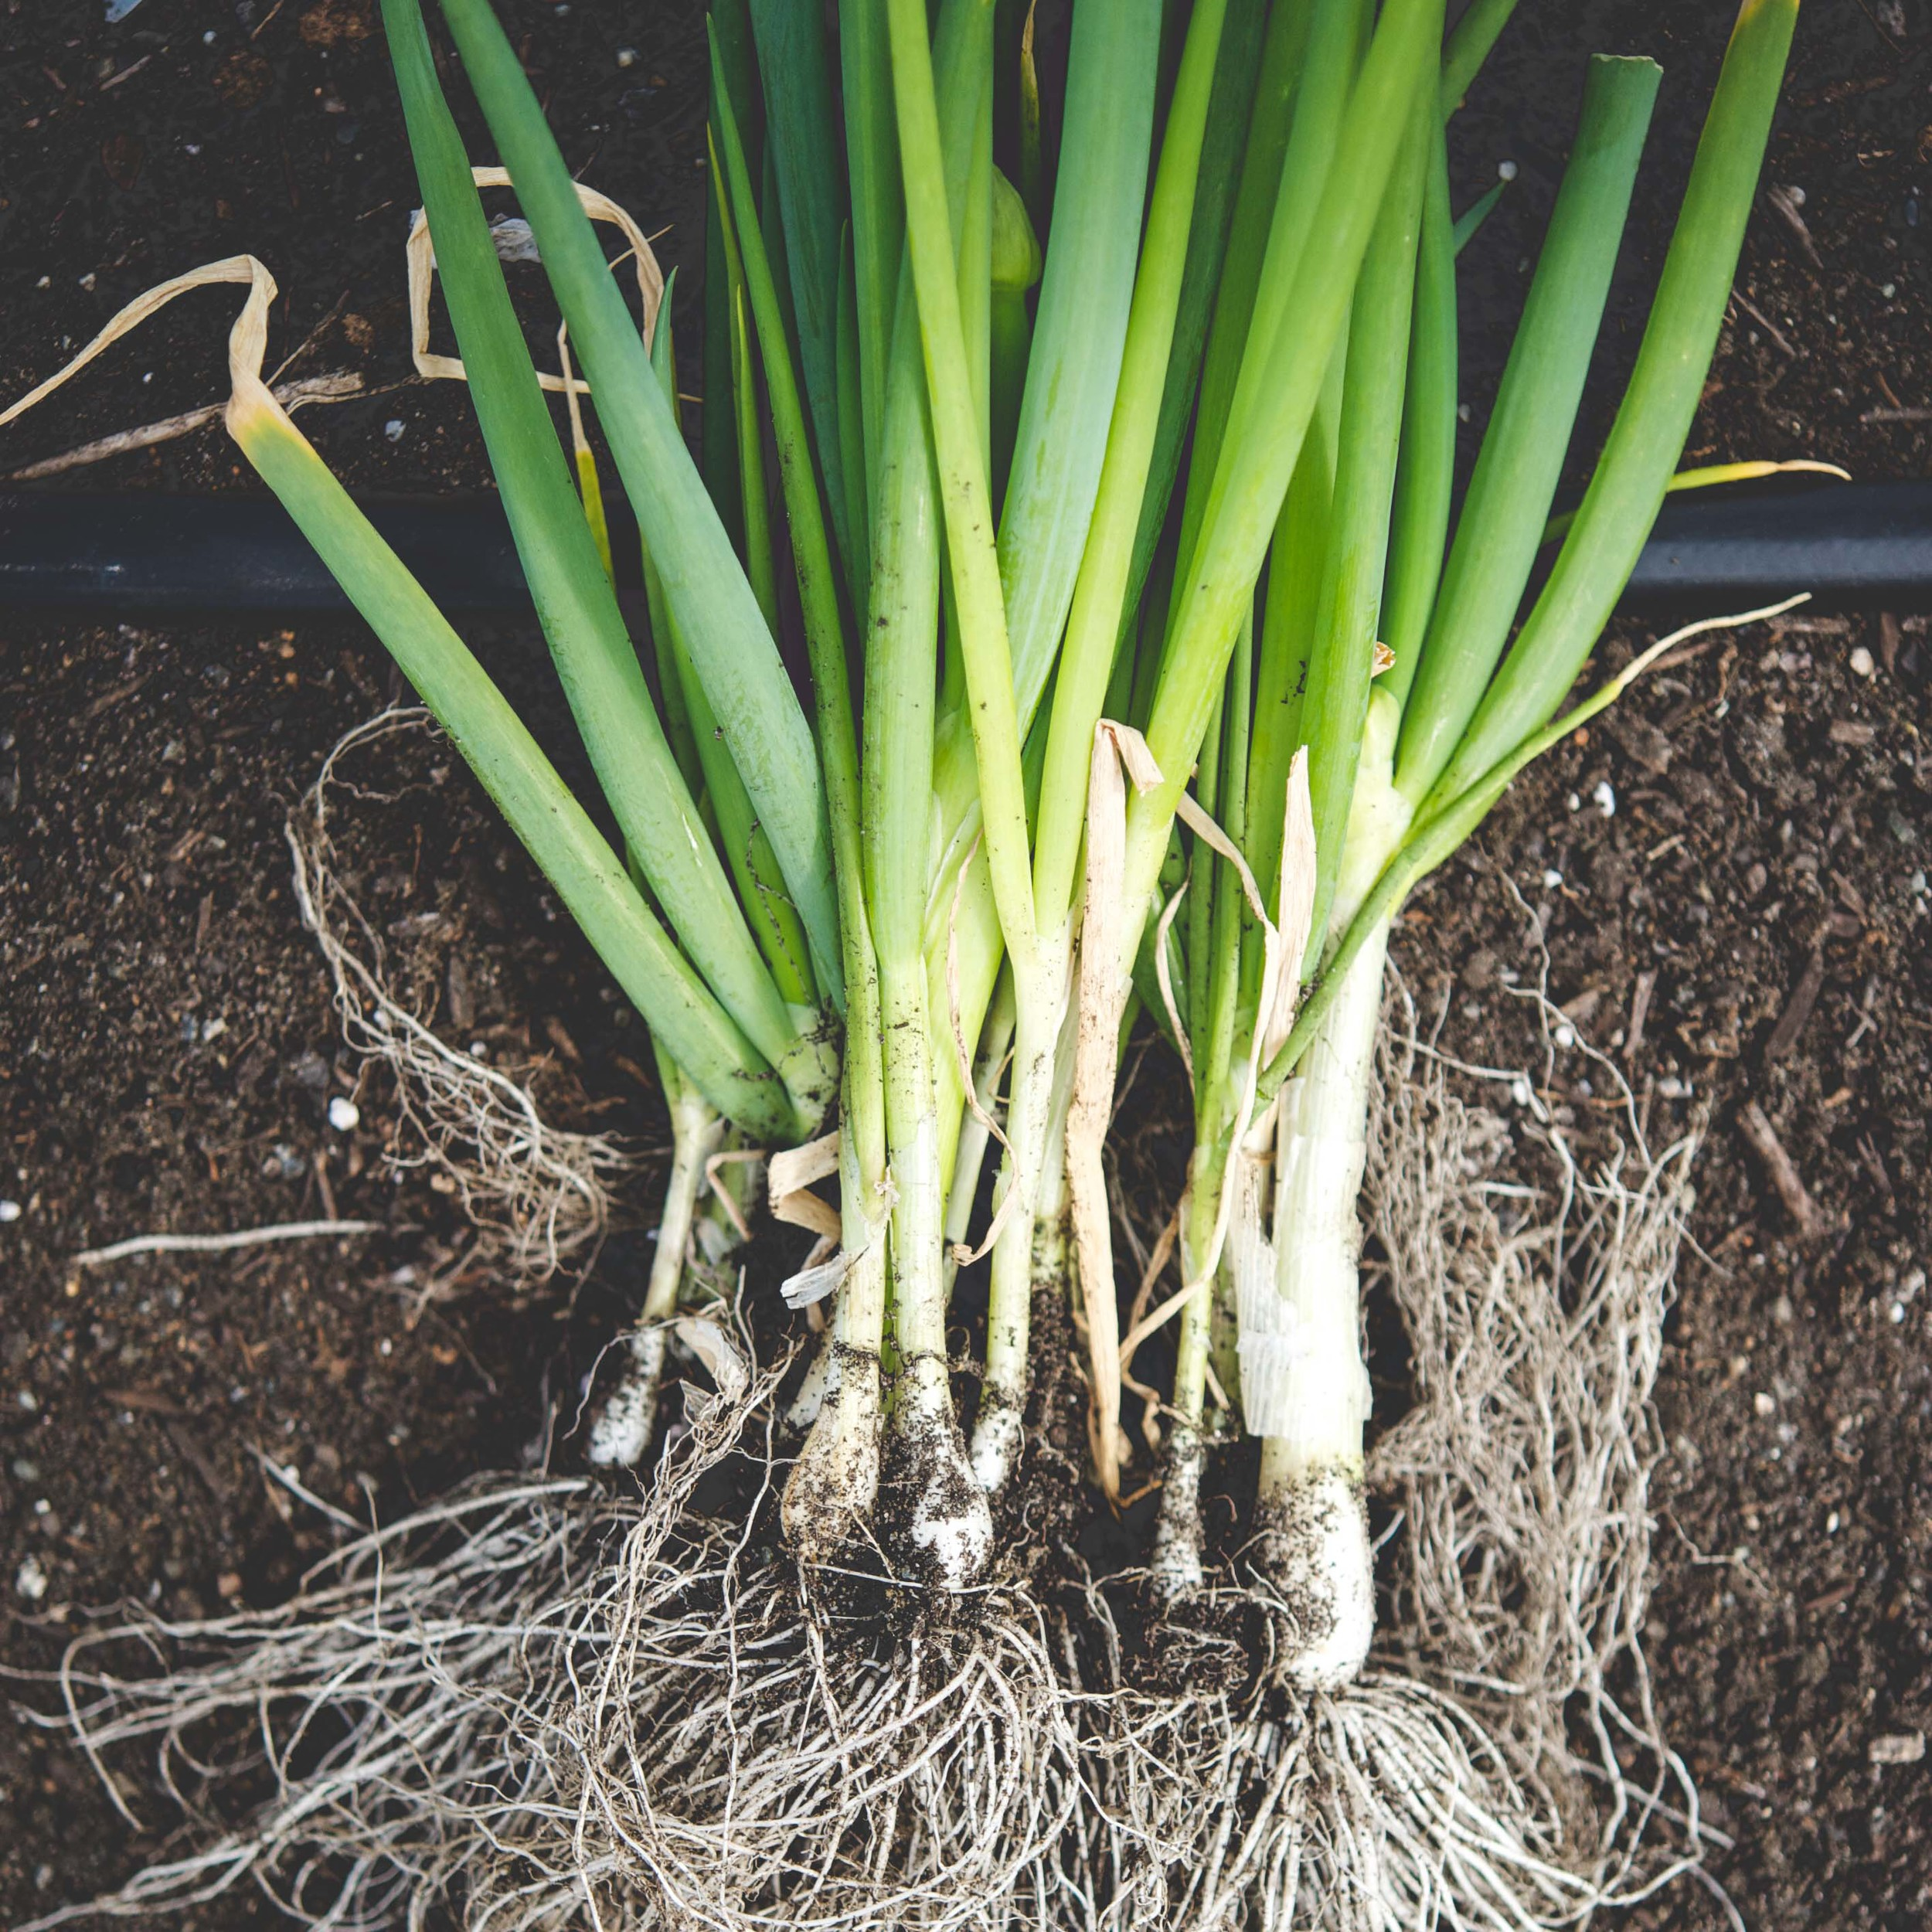 Scallions   Evergreen Hardy White*  //  Scallions are extremely cold hardy and will easily overwinter in climates where temperatures dip below 10° F.